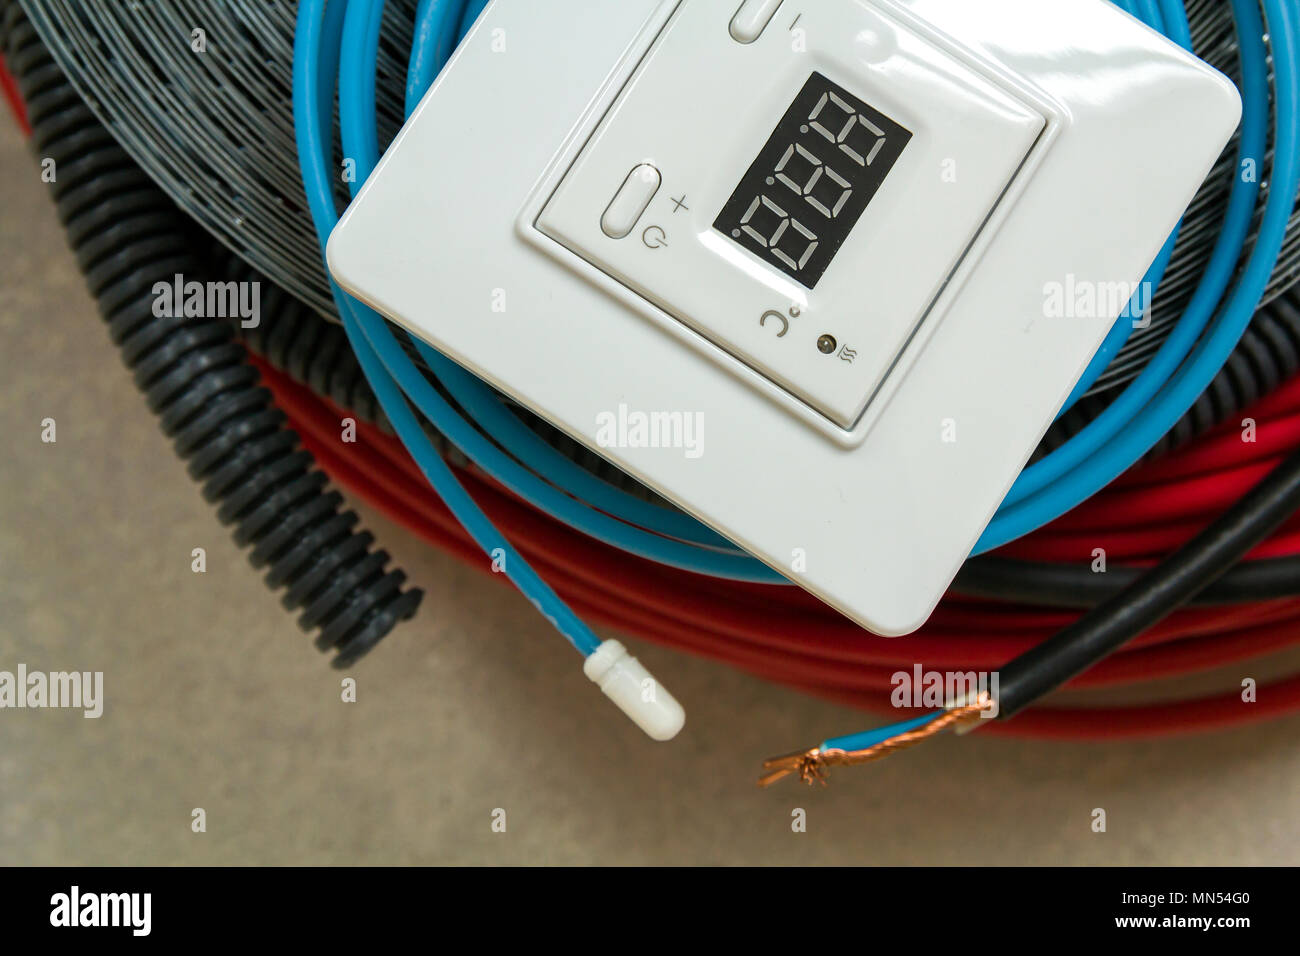 hight resolution of heating floor system wires cables and control panel renovation and construction concept comfort house